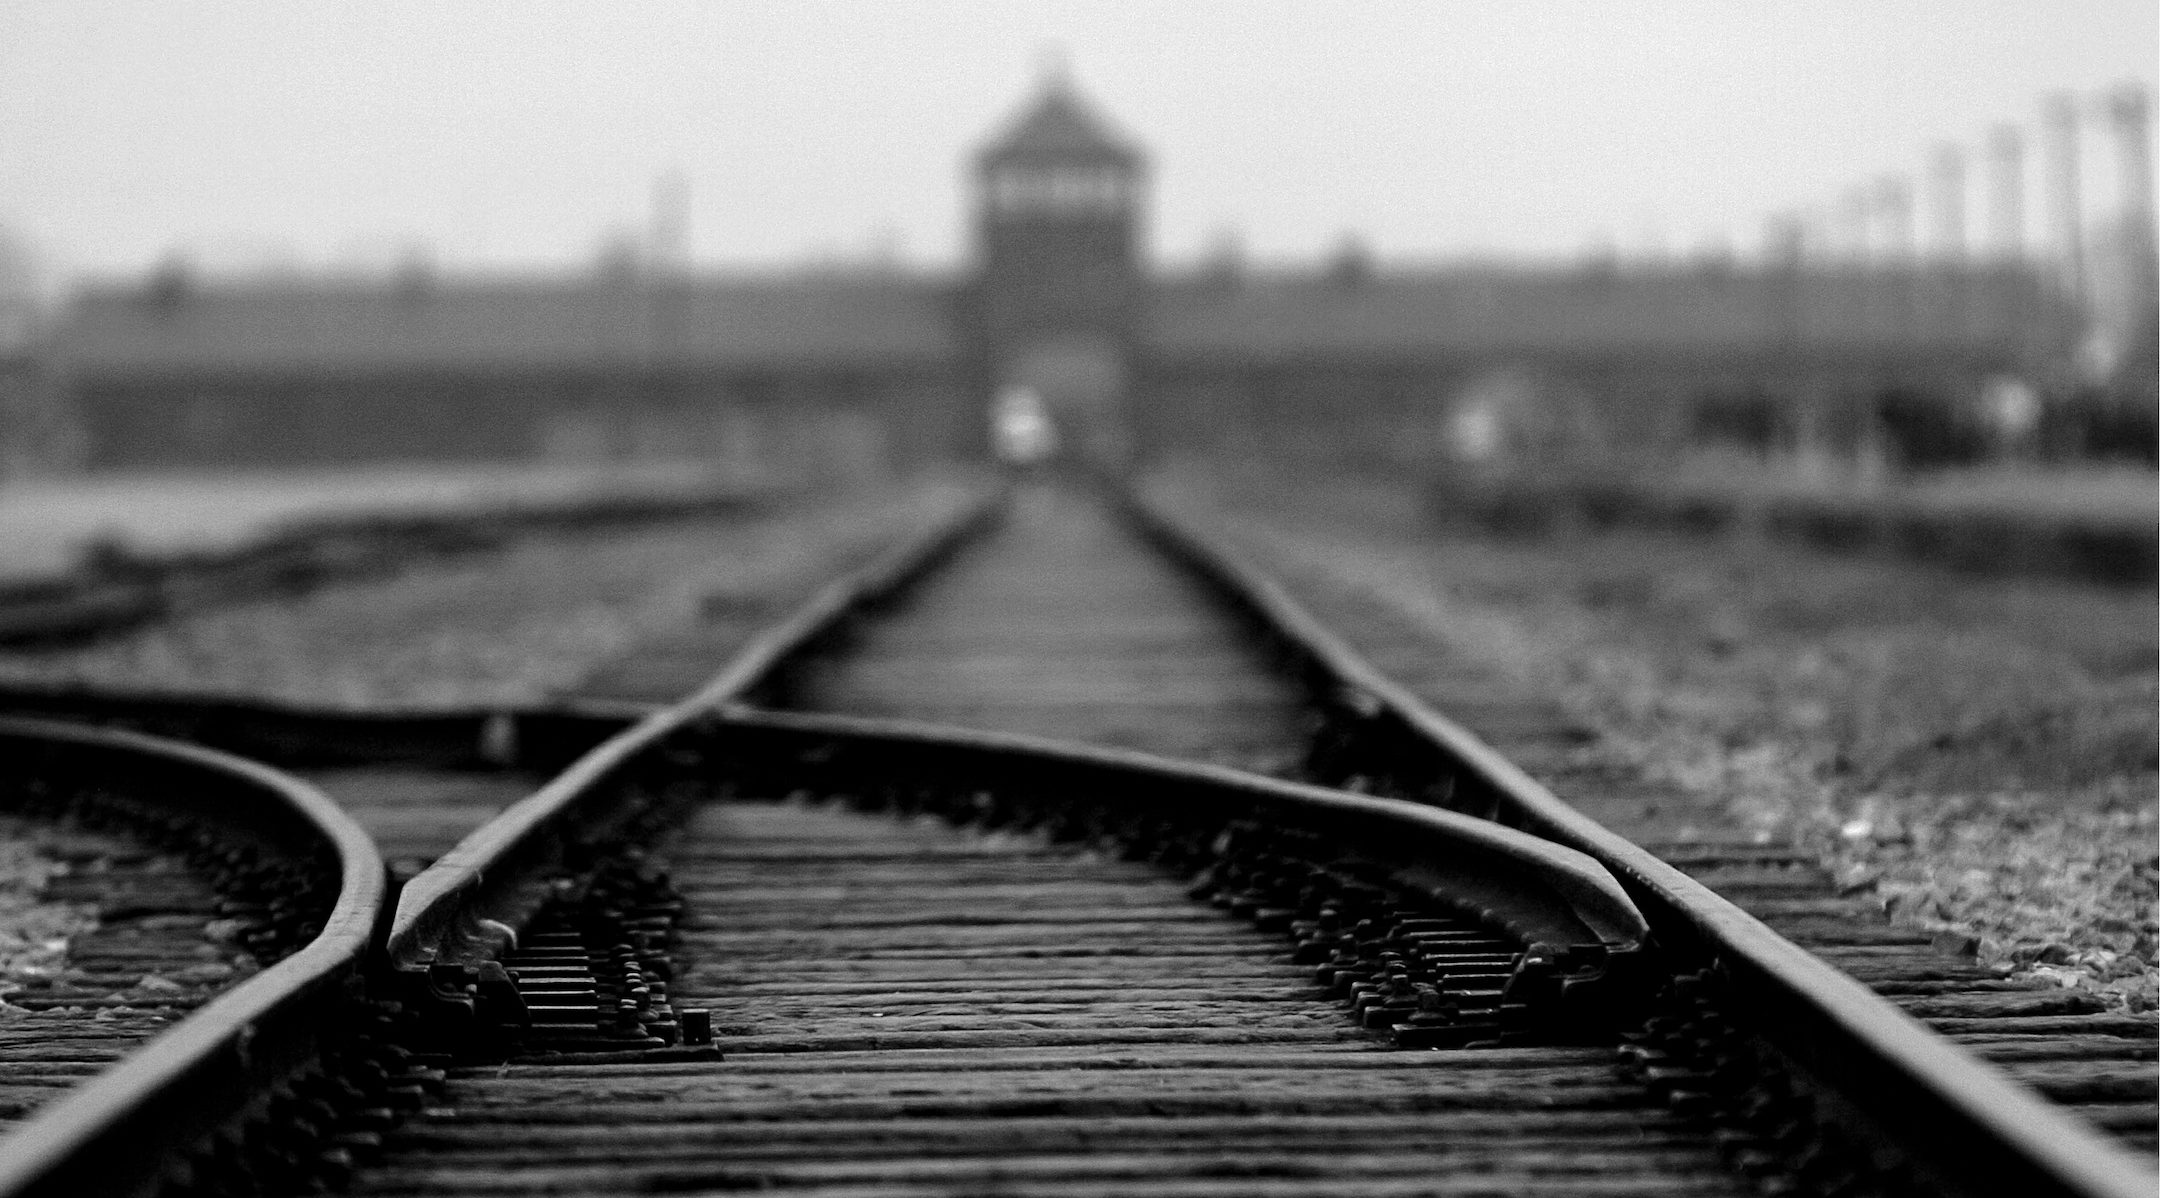 A view from outside the former death camp Auschwitz-Birkenau in Poland (Alexandre Marchi/Gamma-Rapho via Getty Images/via JTA)